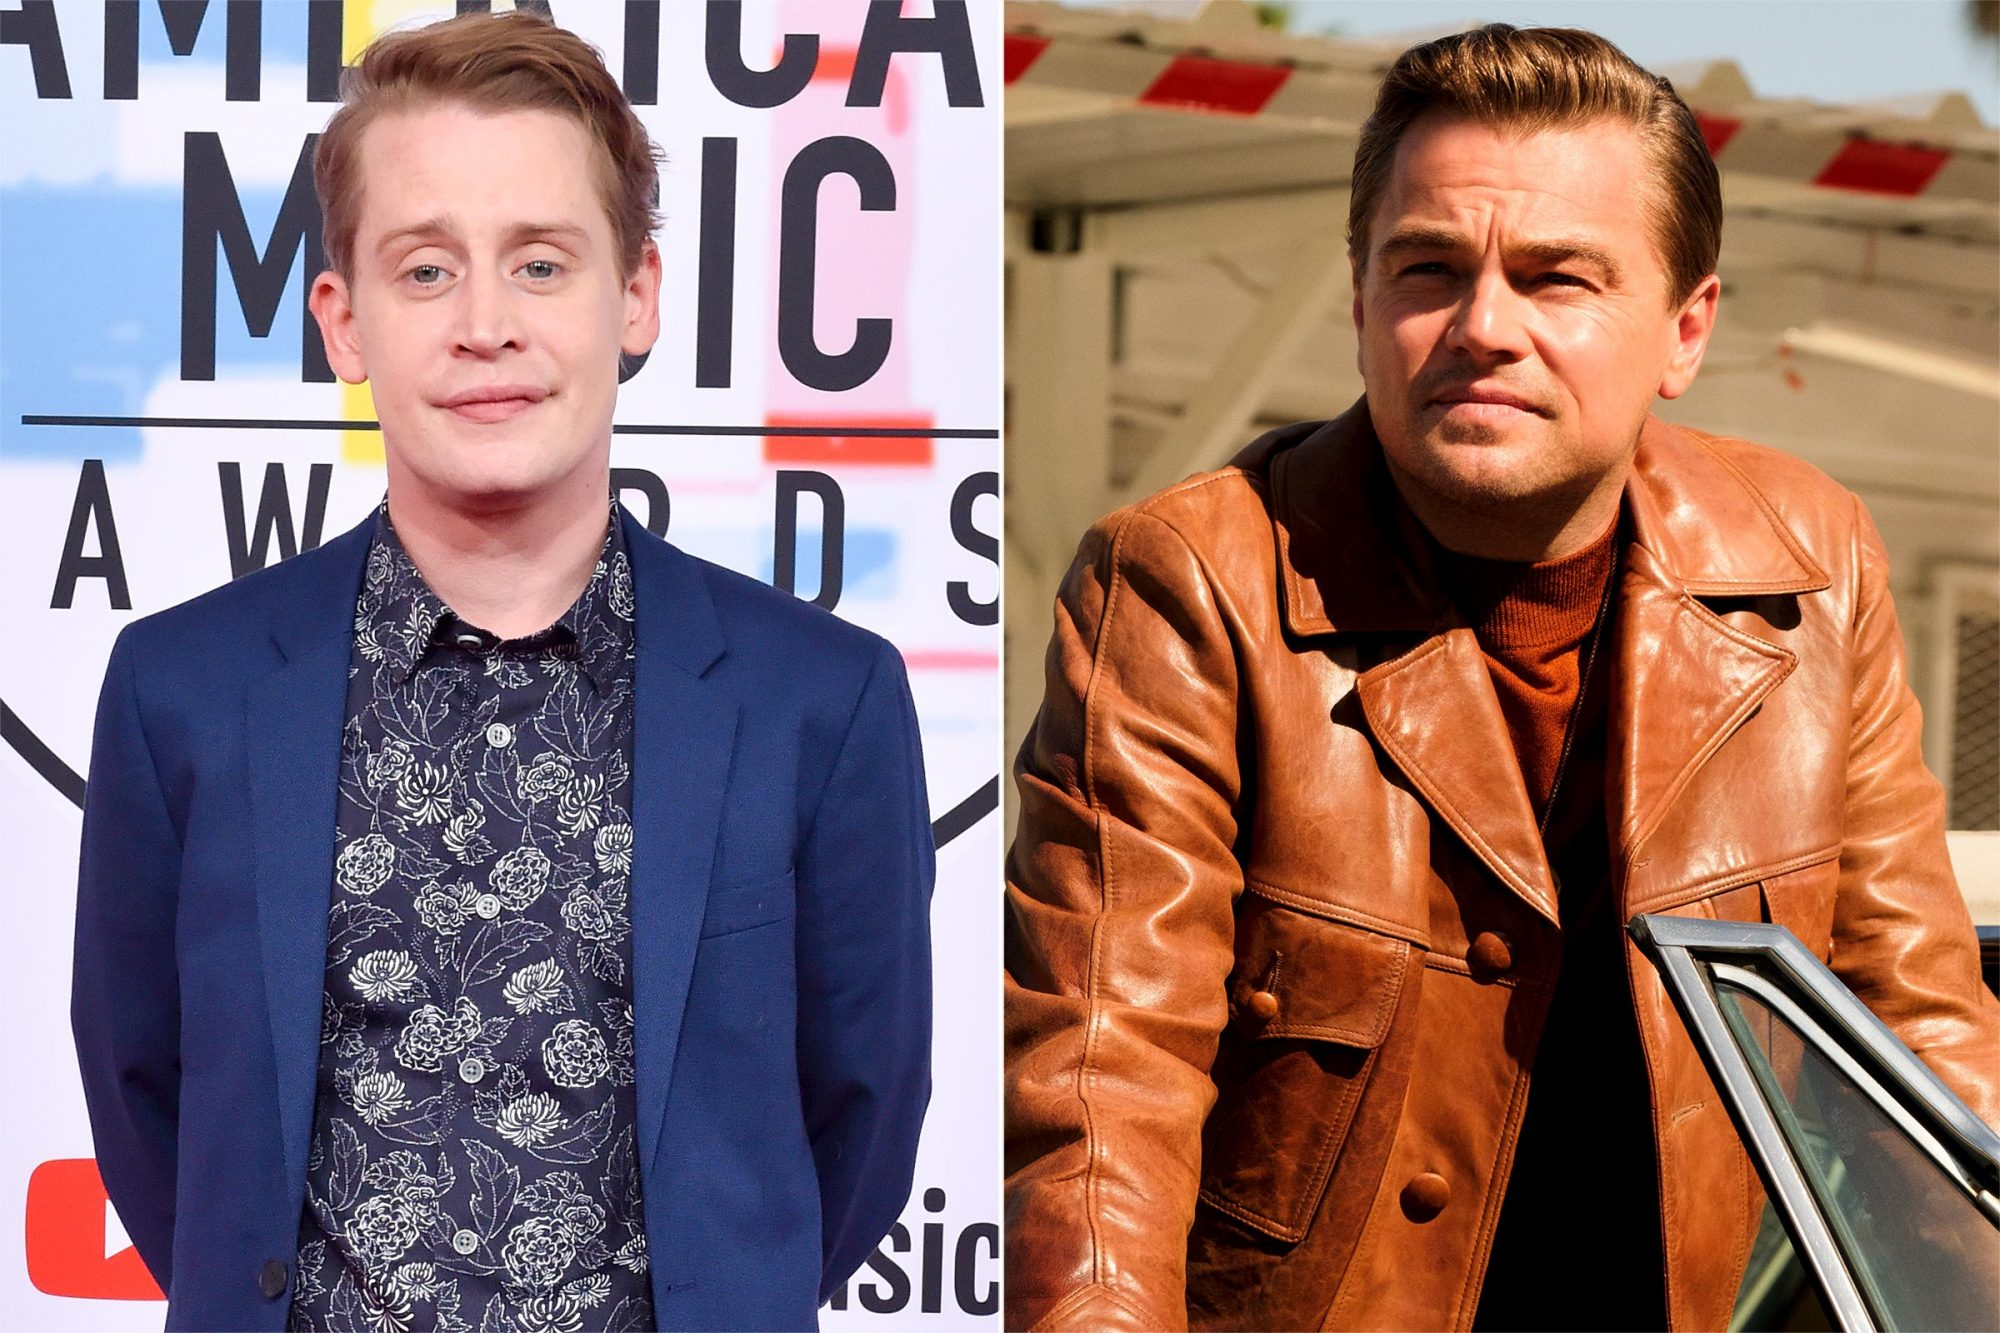 Macaulay Culkin / ONCE UPON A TIME IN HOLLYWOOD